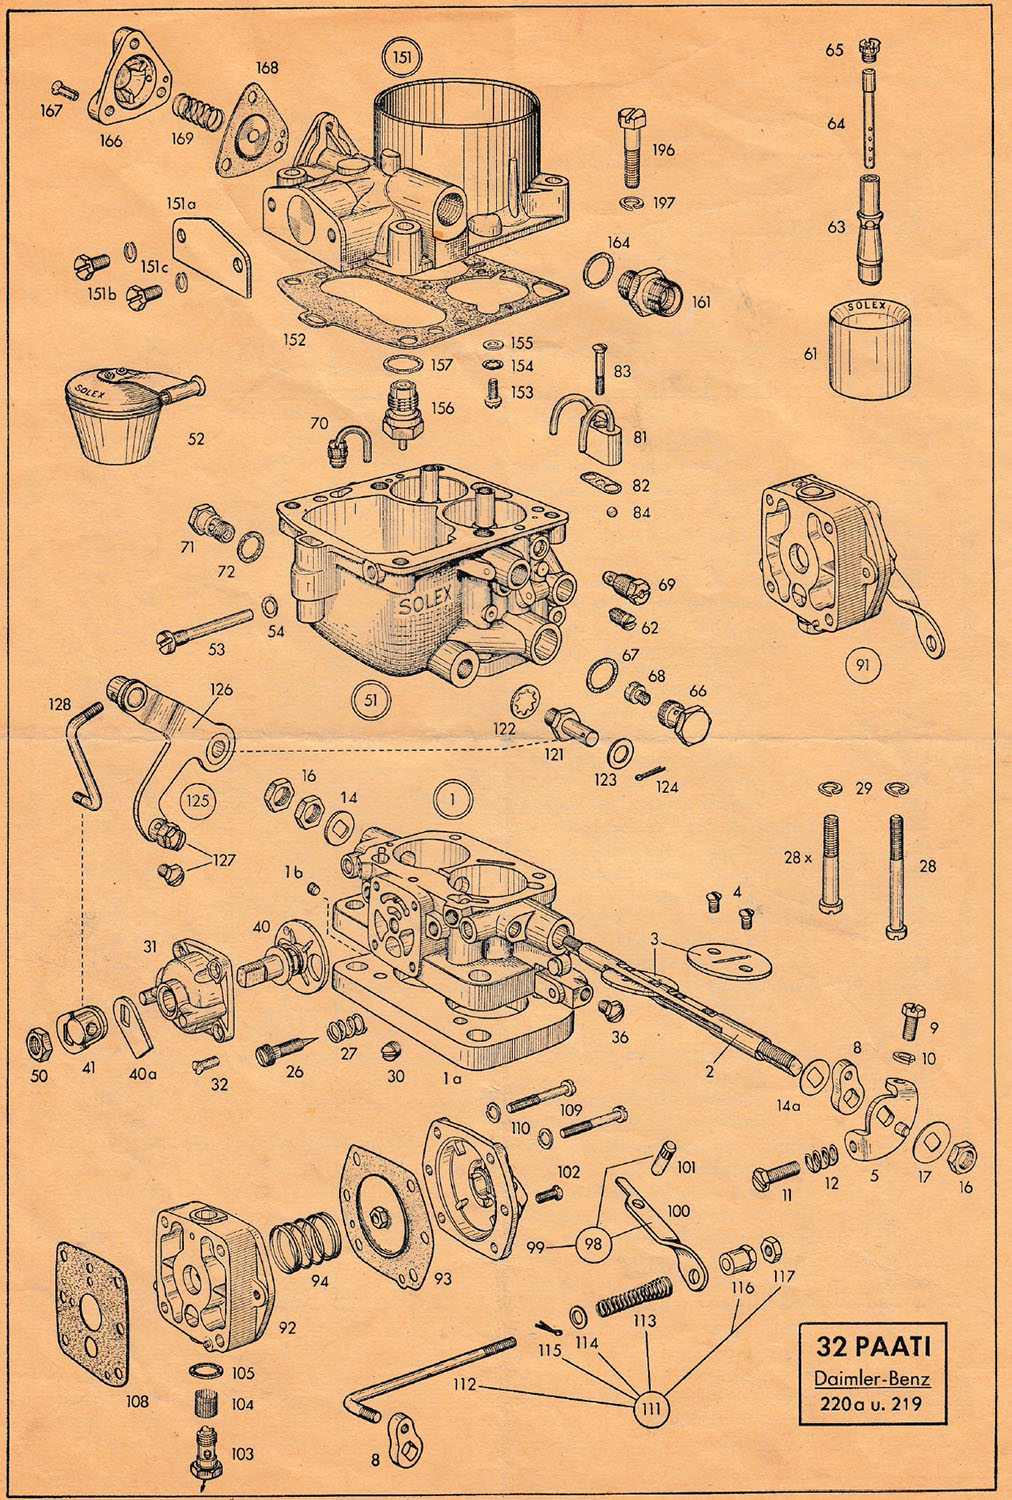 Parts list for the Solex 32 PAATI , carburetor for the M 180 II engine of a Mercedes type 219